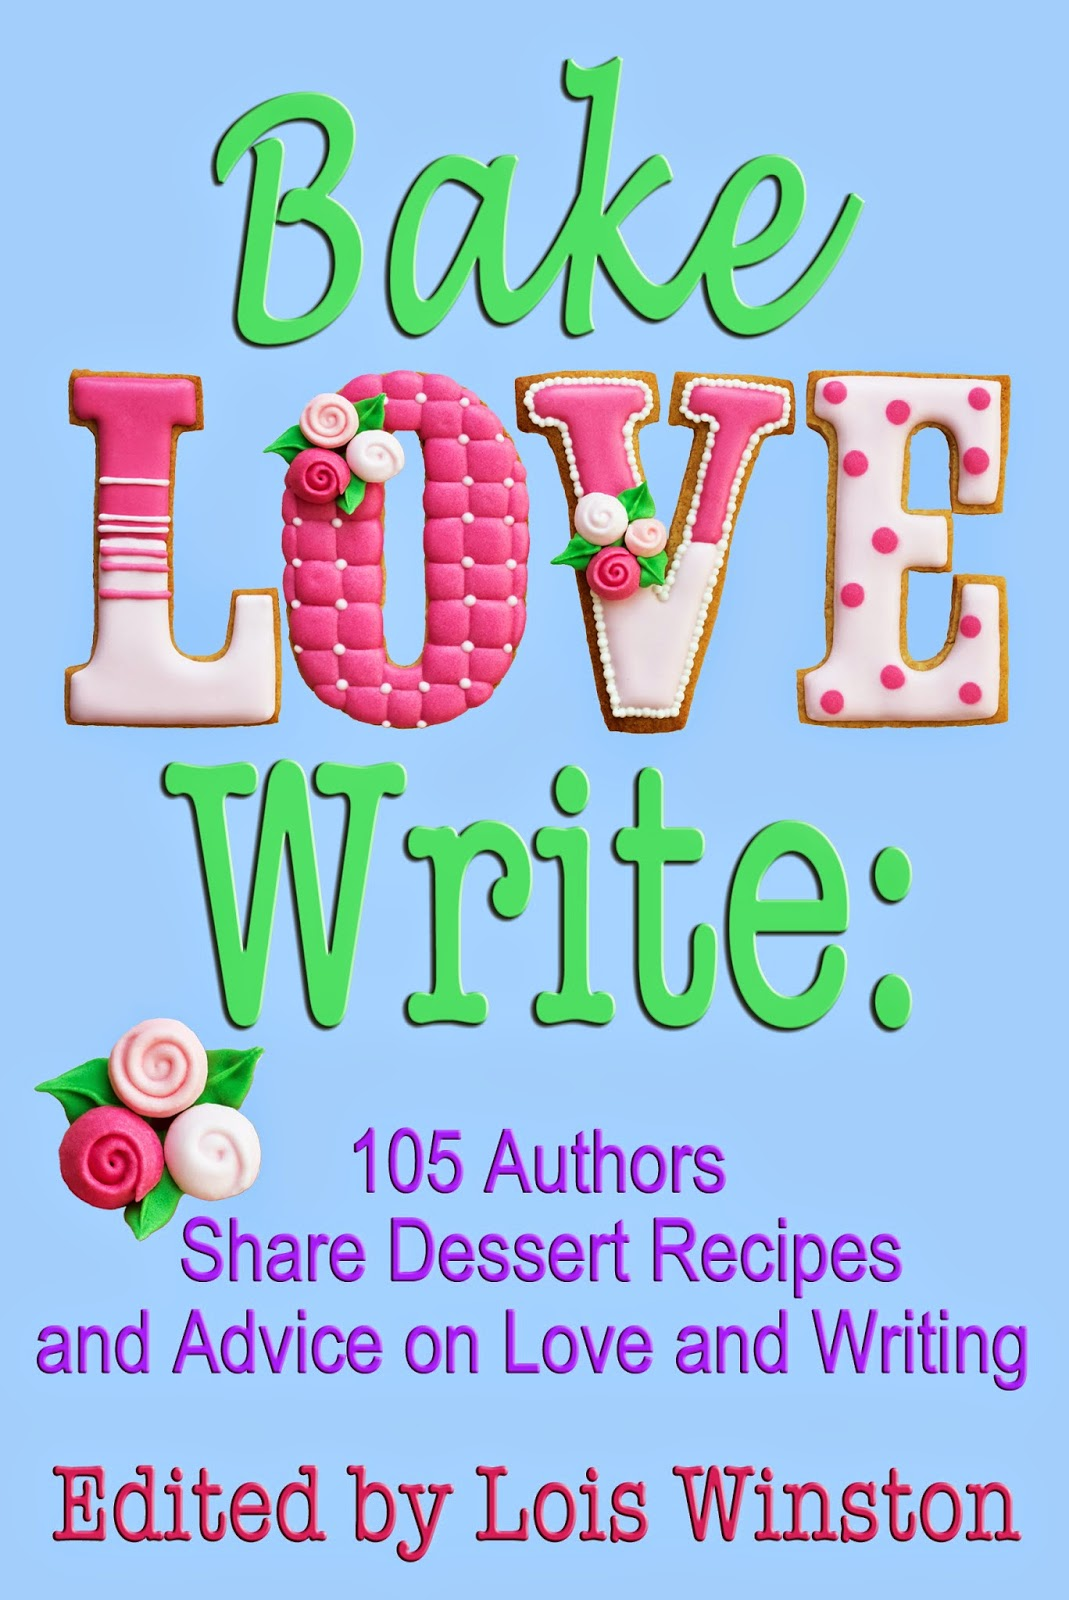 http://www.amazon.com/Bake-Love-Write-Authors-Dessert-ebook/dp/B00NO2DPTY/